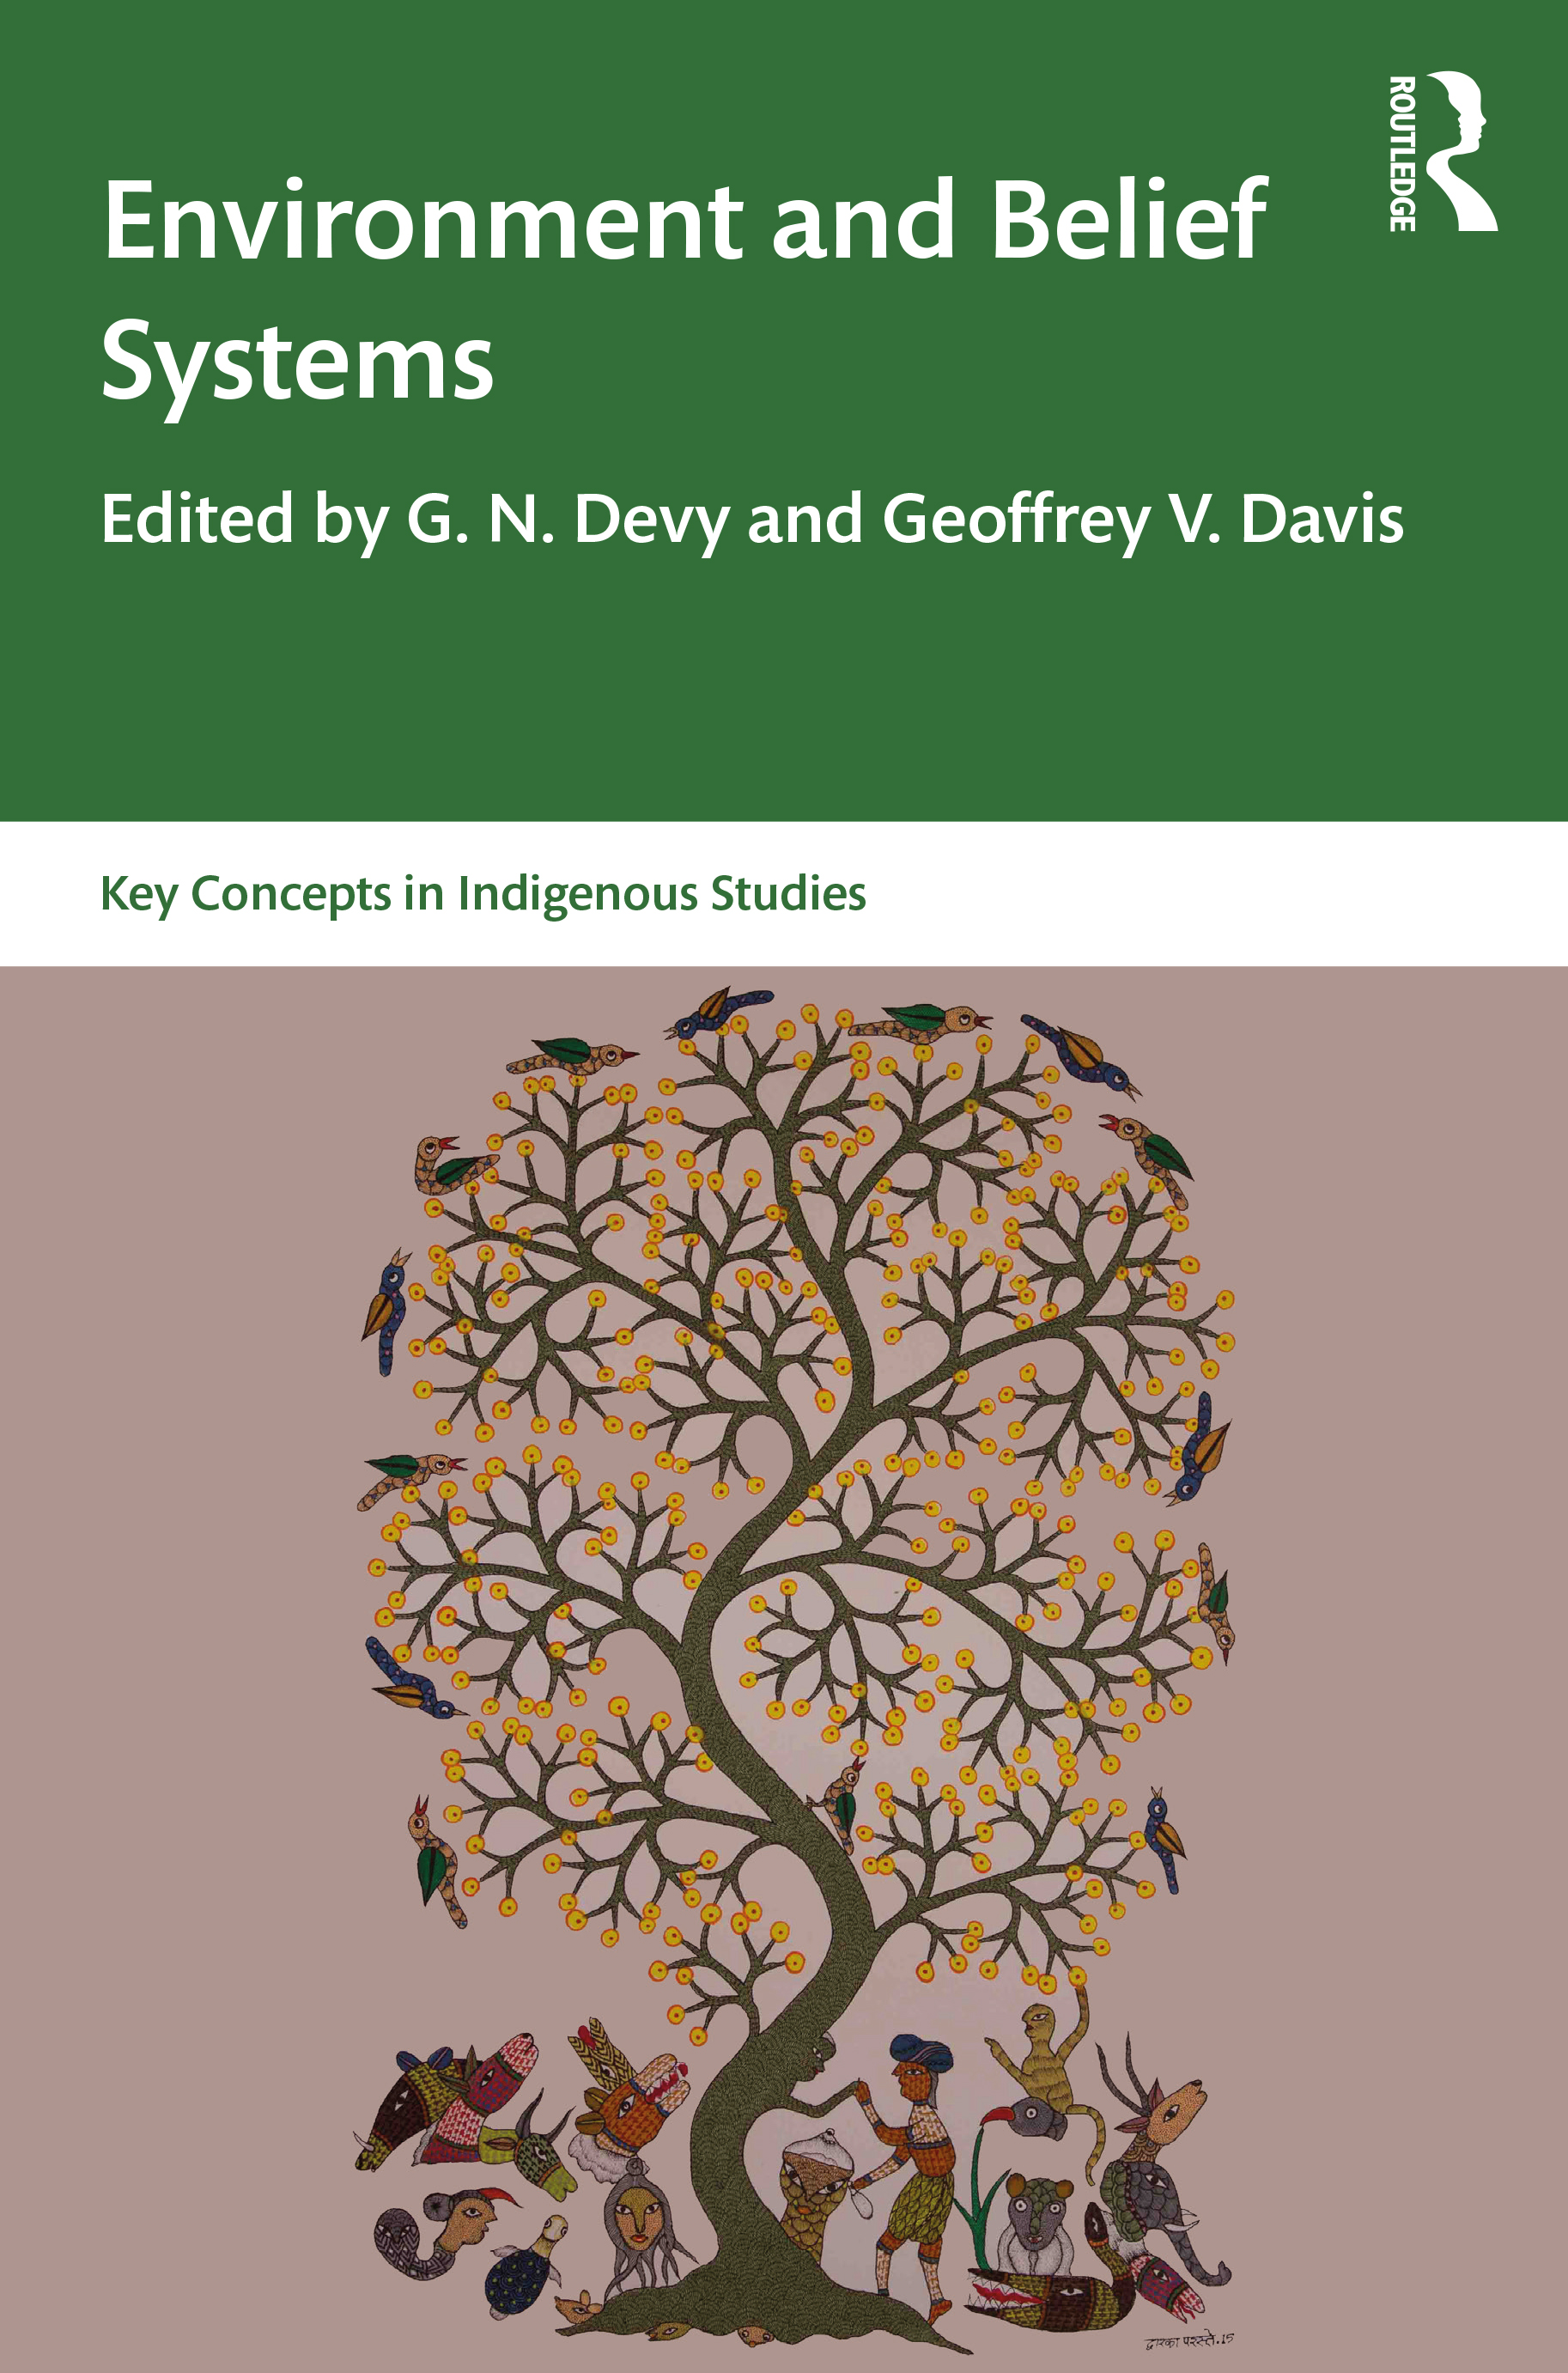 Environment and Belief Systems book cover